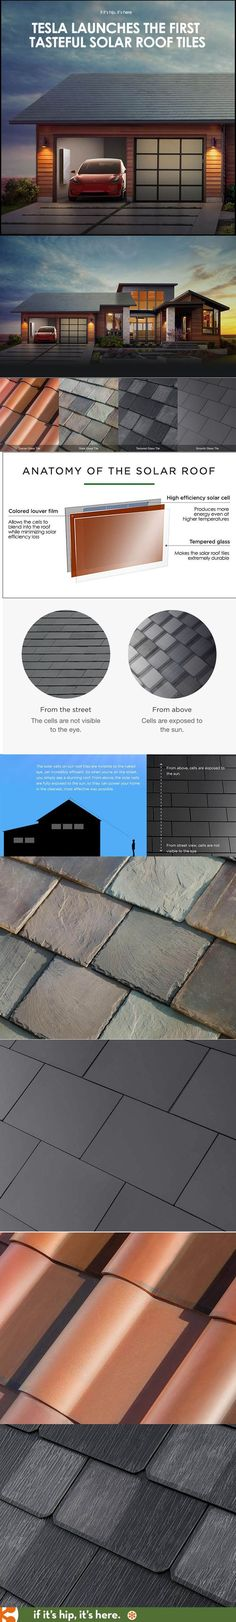 Energy Efficient Home Upgrades in Los Angeles For $0 Down -- Home Improvement Hub -- Via - Finally, good looking solar roofing! Learn all about it at http://www.ifitshipitshere.com/tesla-solar-roof-tiles/ #TESLA #solarrooftiles